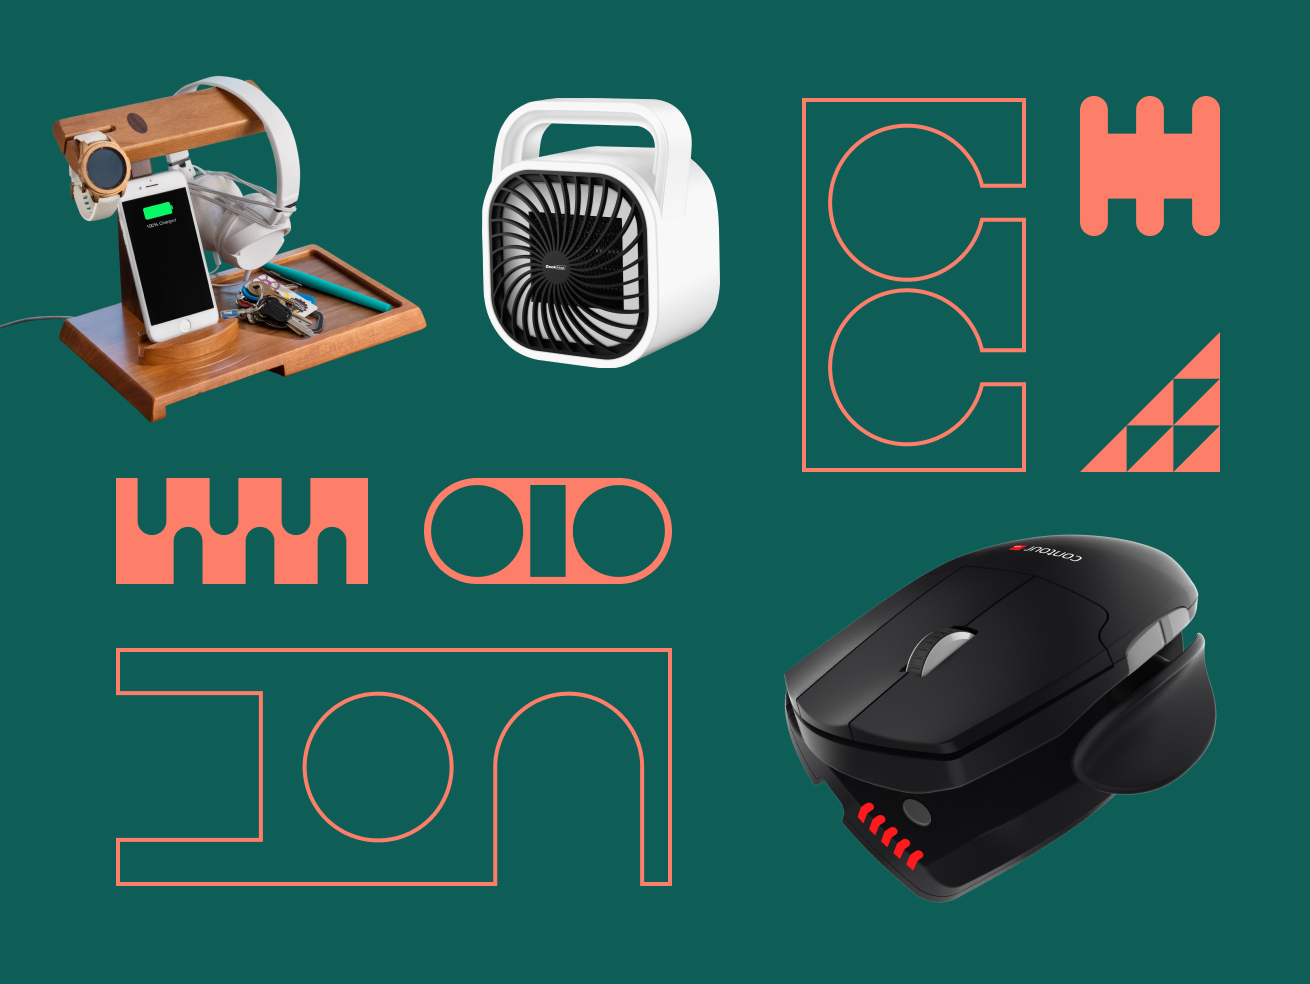 Organic shapes with three products: Thomaswork Charging Station, Evapolar Air Conditioner, and Contour Design Mouse